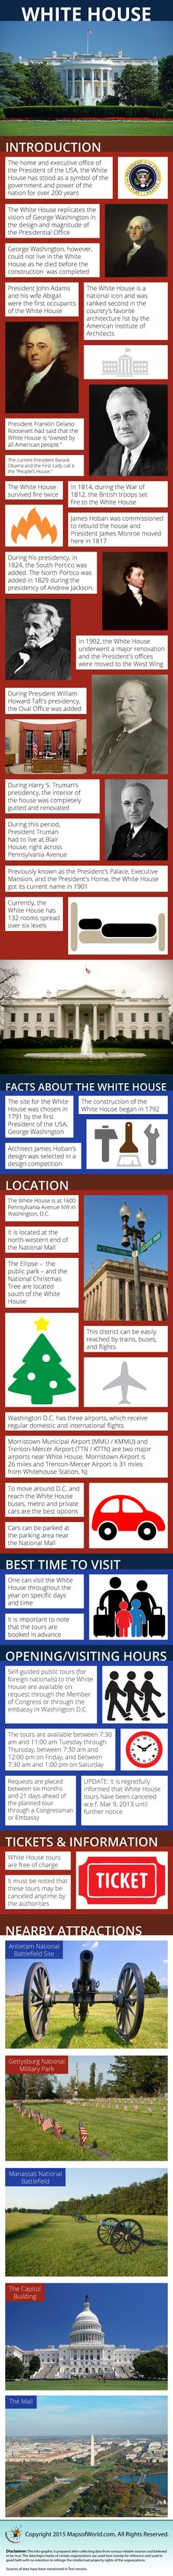 #Infographic sharing facts and information about the #WhiteHouse, USA